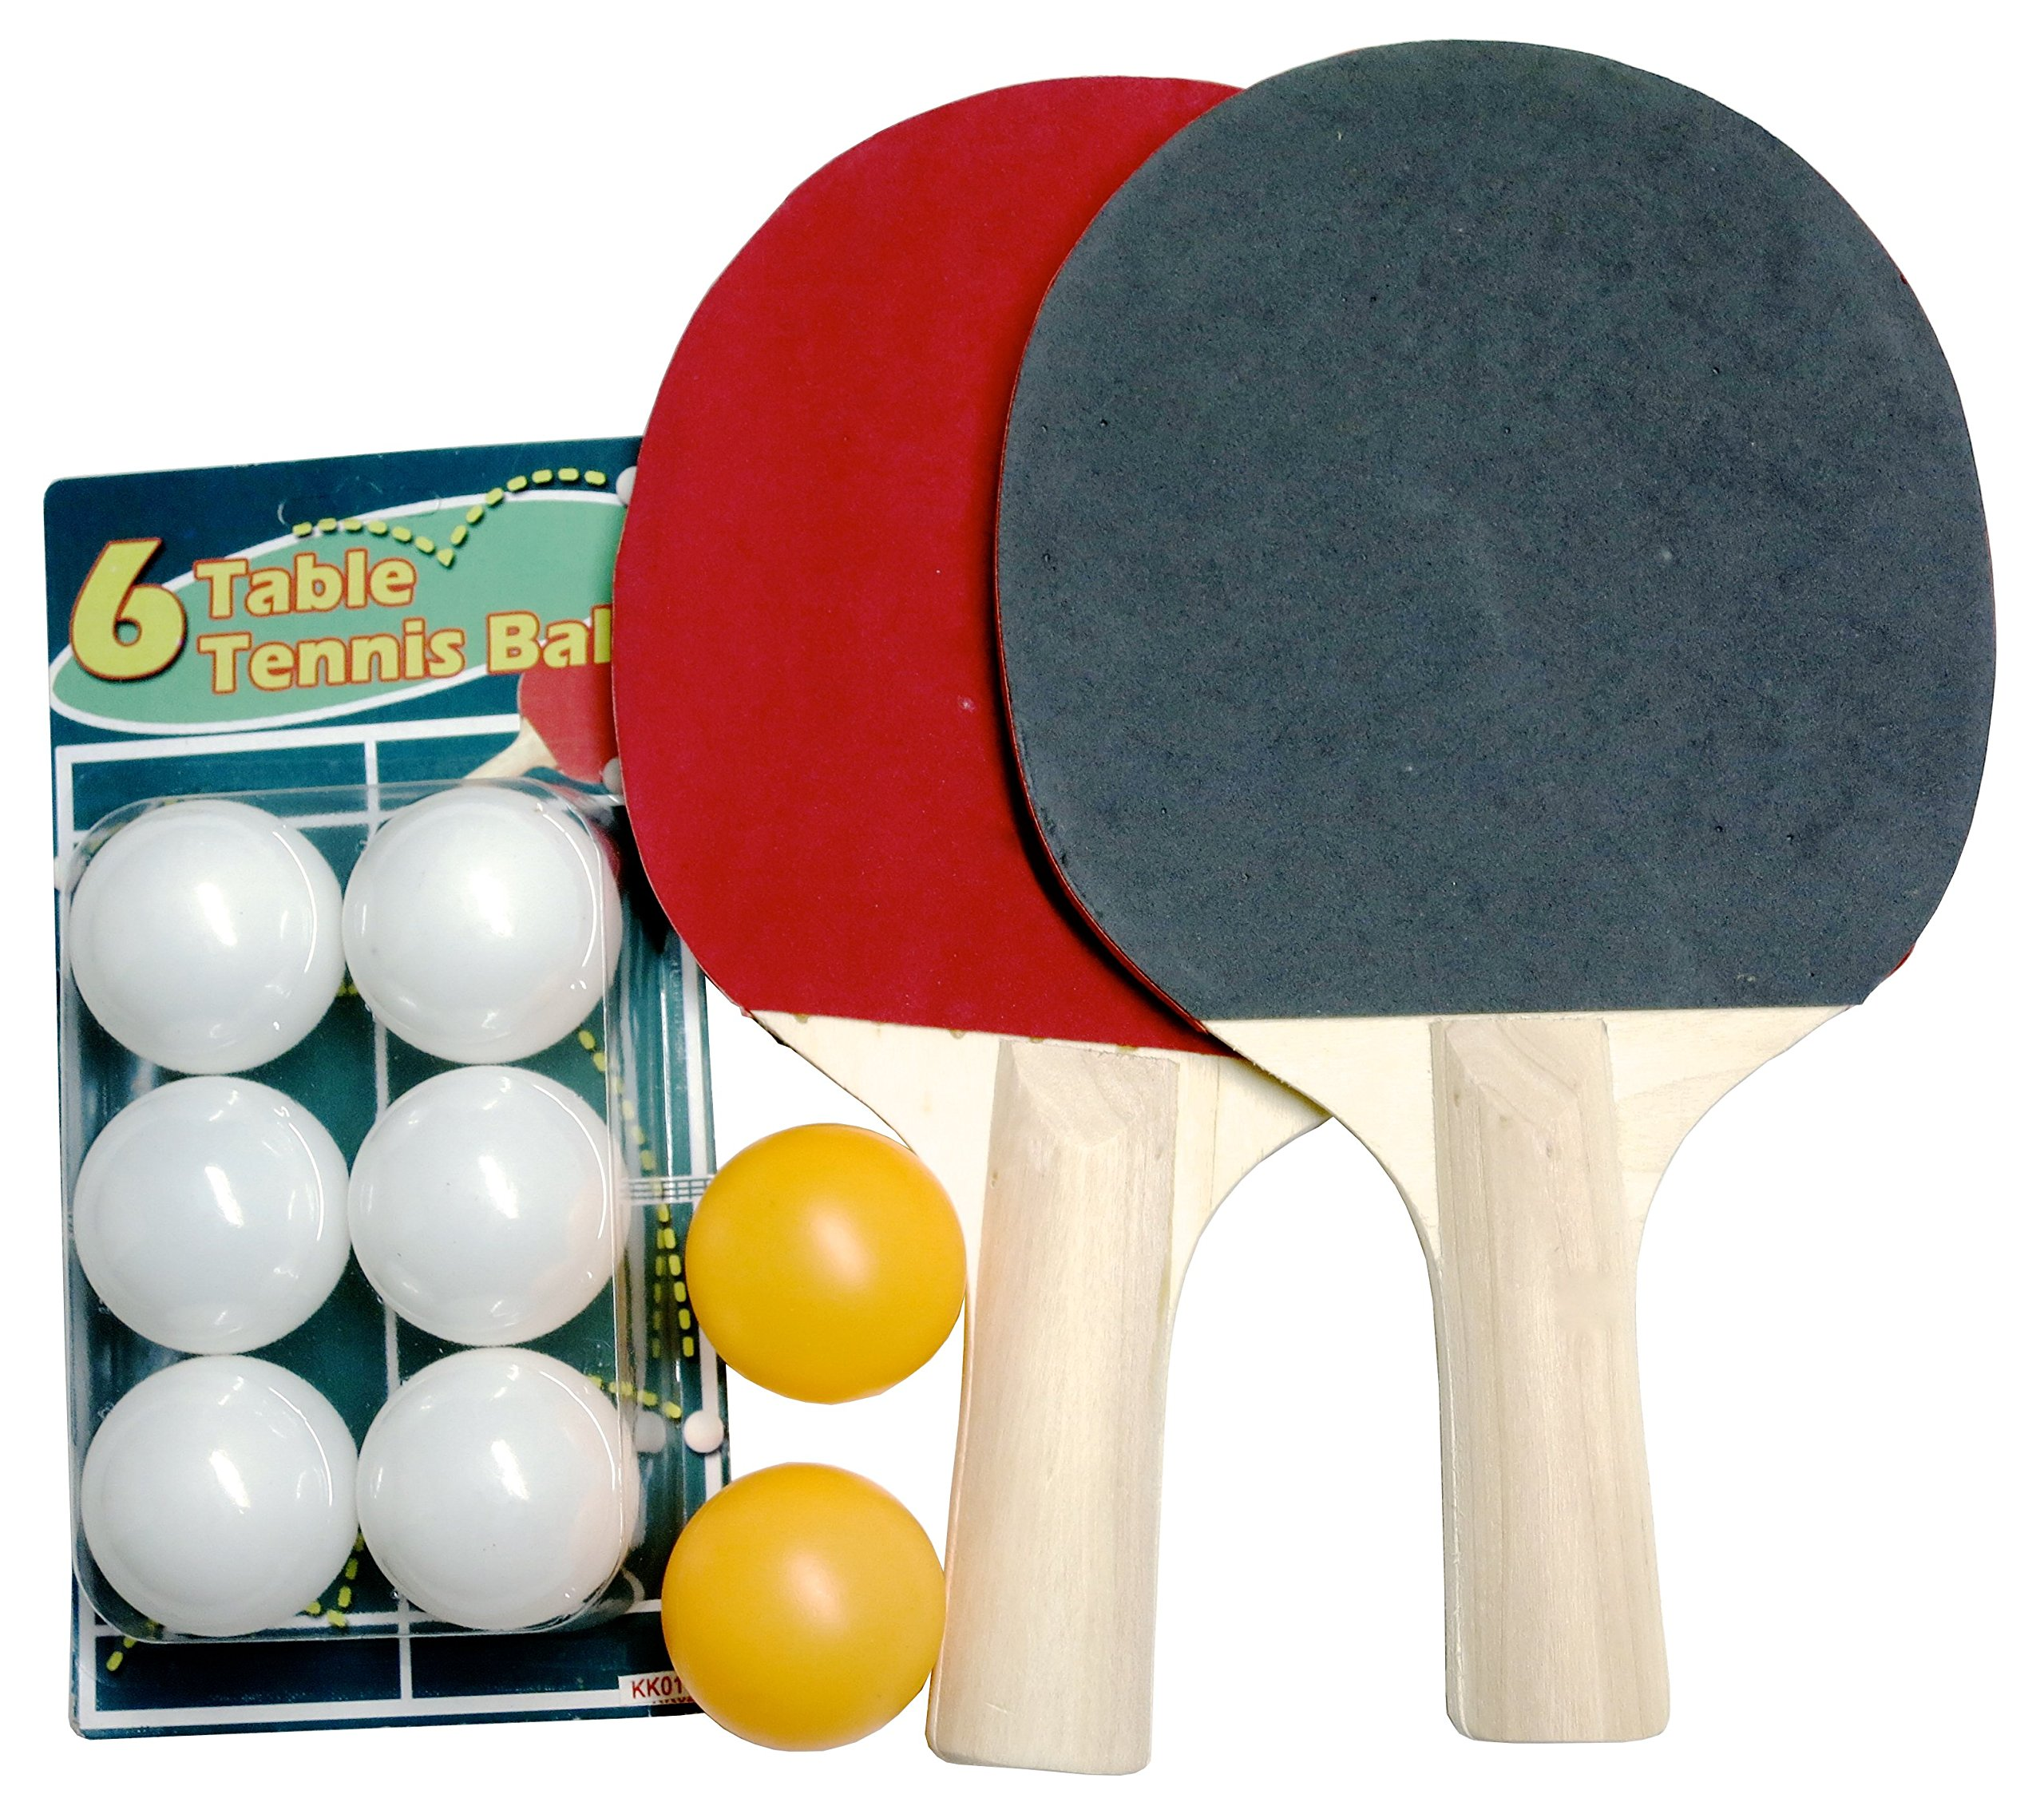 Ping Pong Table Tennis Padded Paddles/Rackets Set of 4 and 4 Orange balls + 16 white Extra Ball's in 2 Zipped Carrying Cases. Perfect For Creating Unforgettable Moment's with Friends And Family.